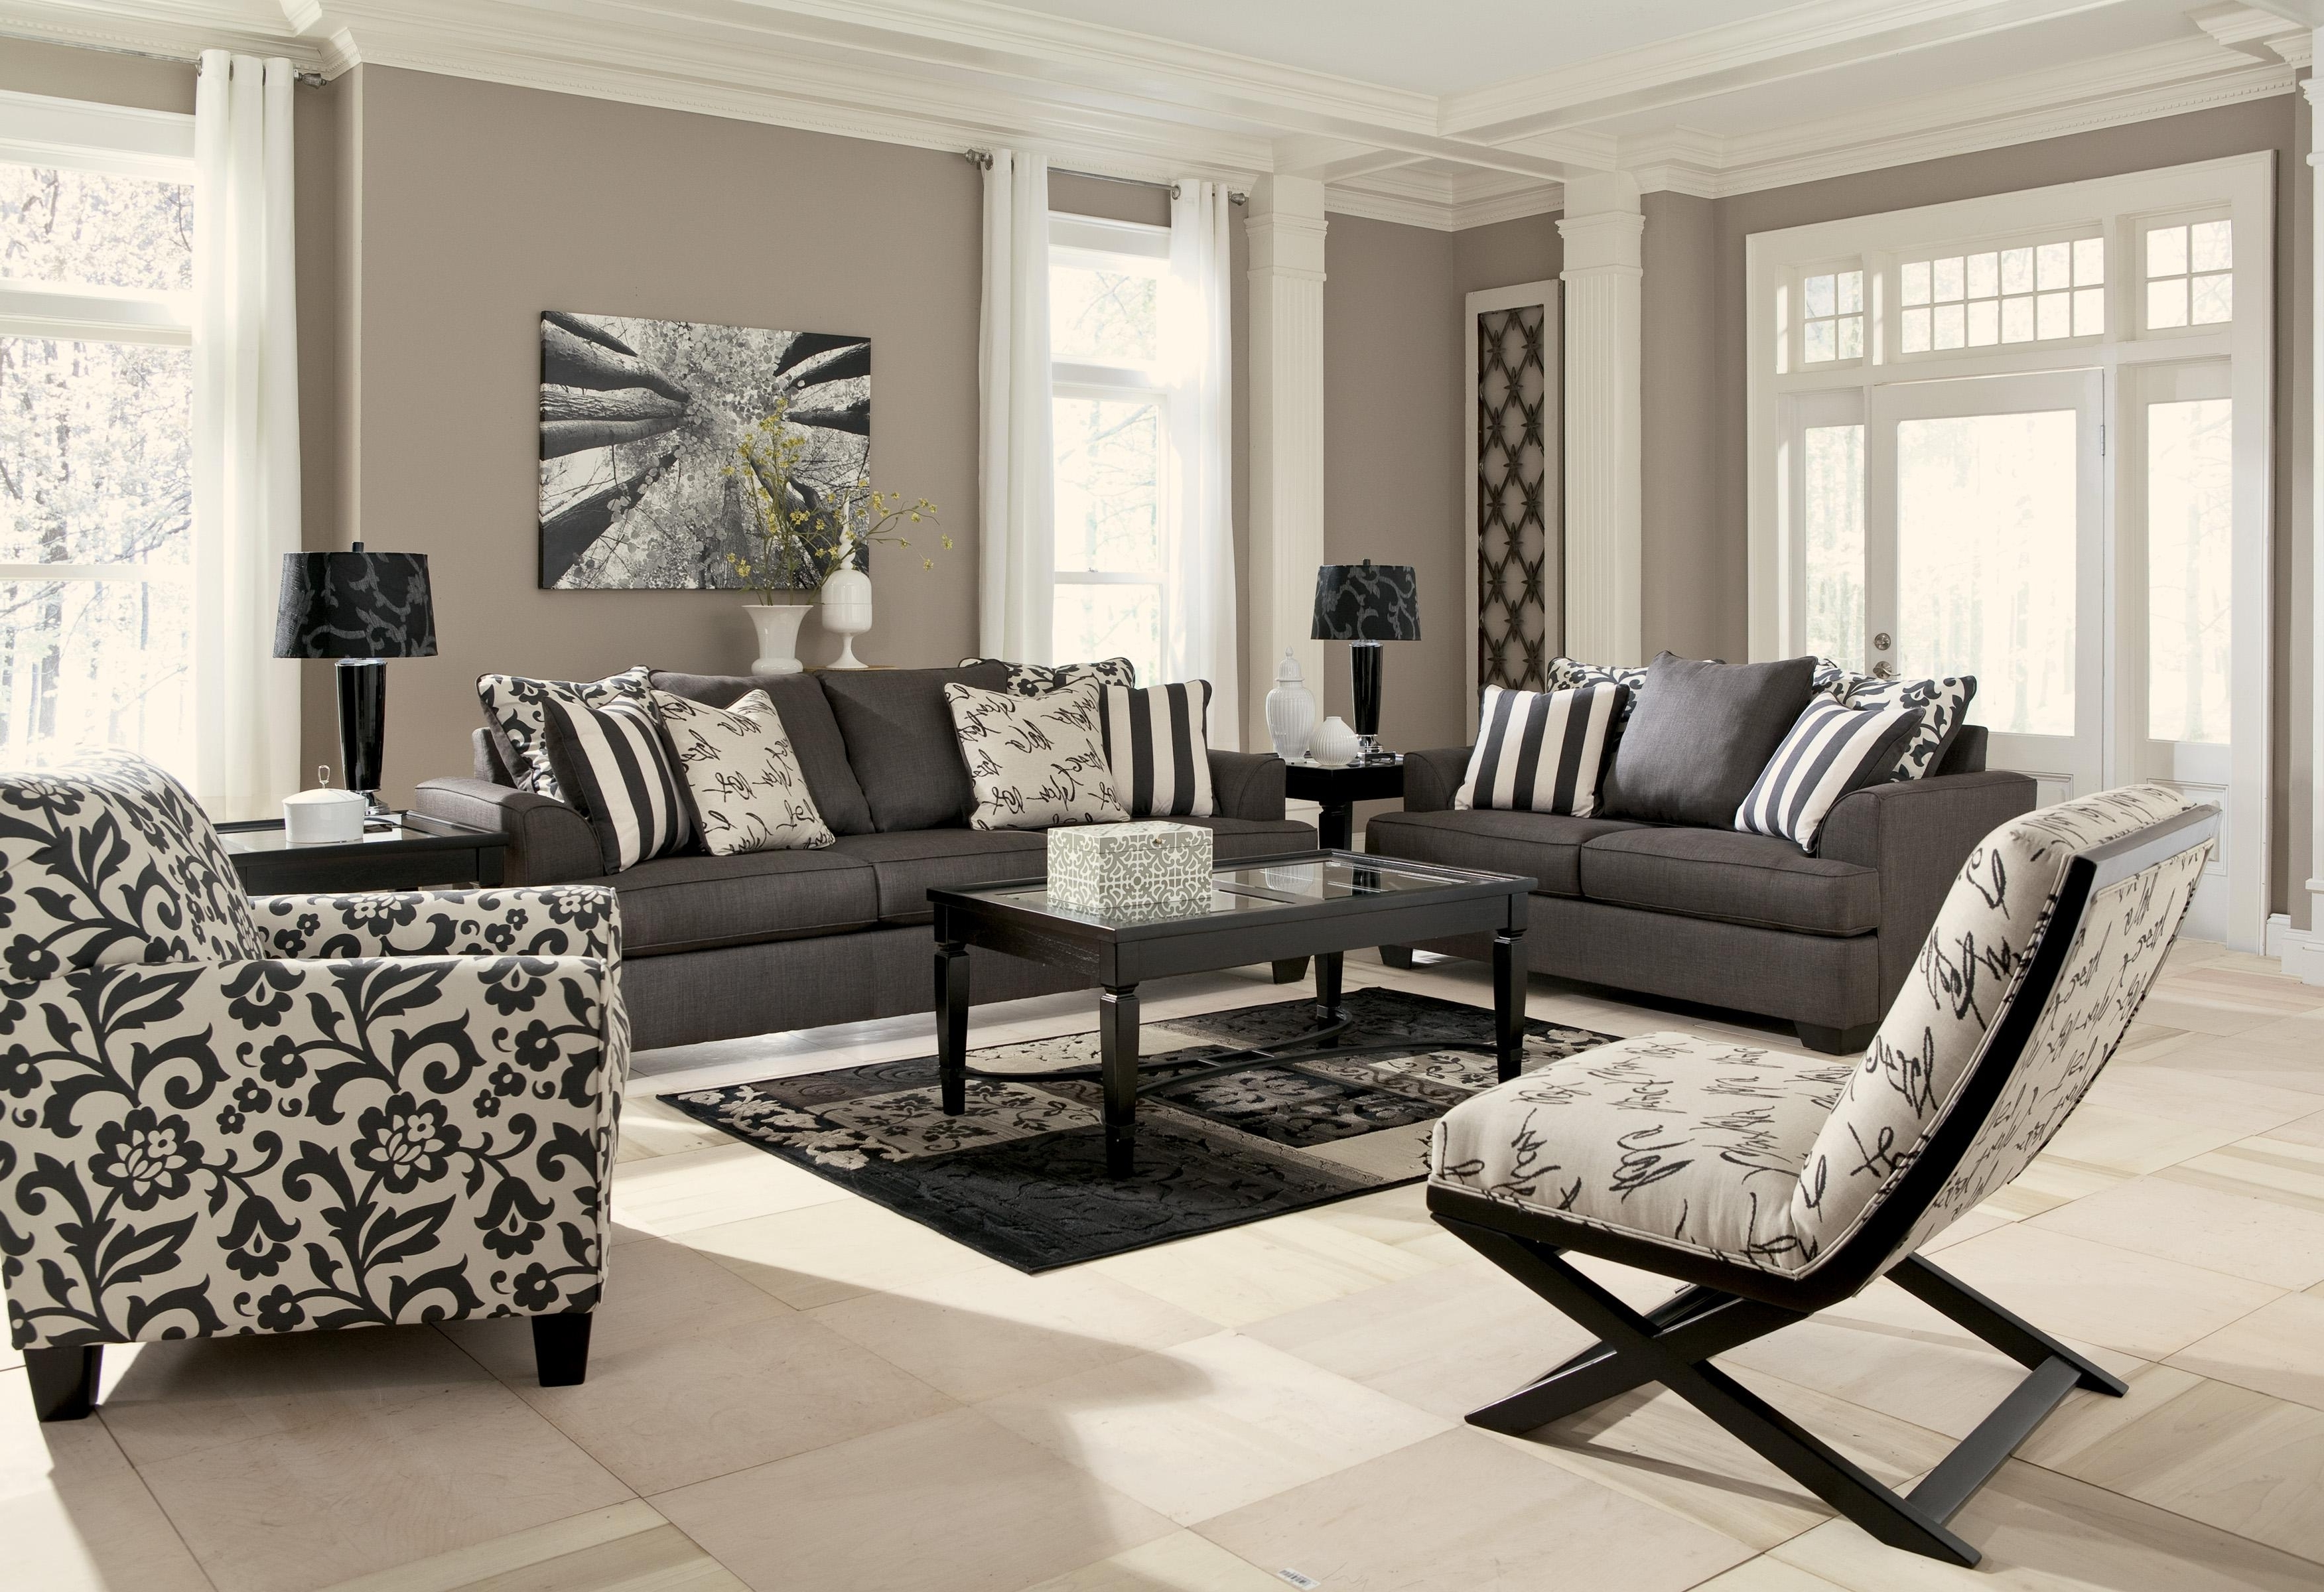 2017 Sofa And Accent Chair Sets With Accent Chair In Floral Printsignature Designashley (View 1 of 15)